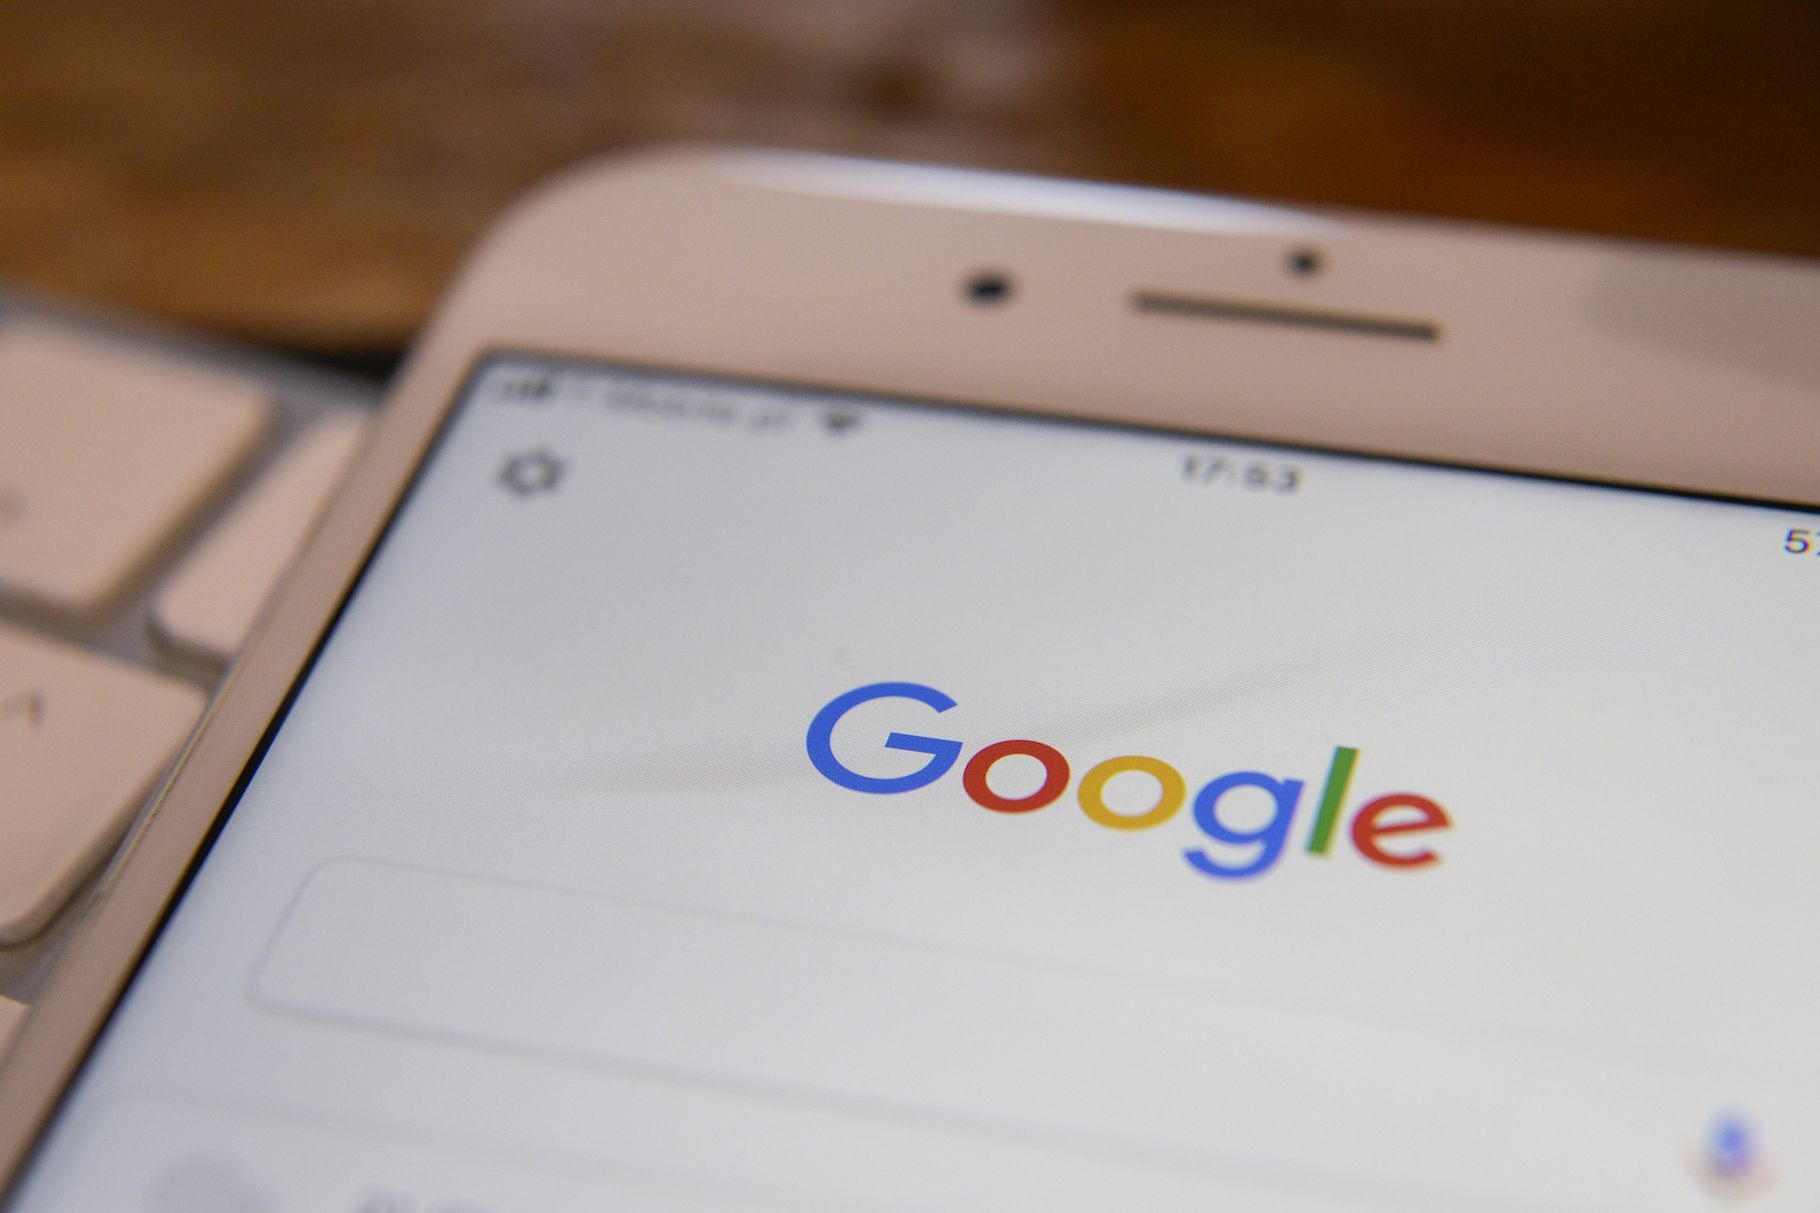 How to make sure Google automatically deletes your data on a regular basis